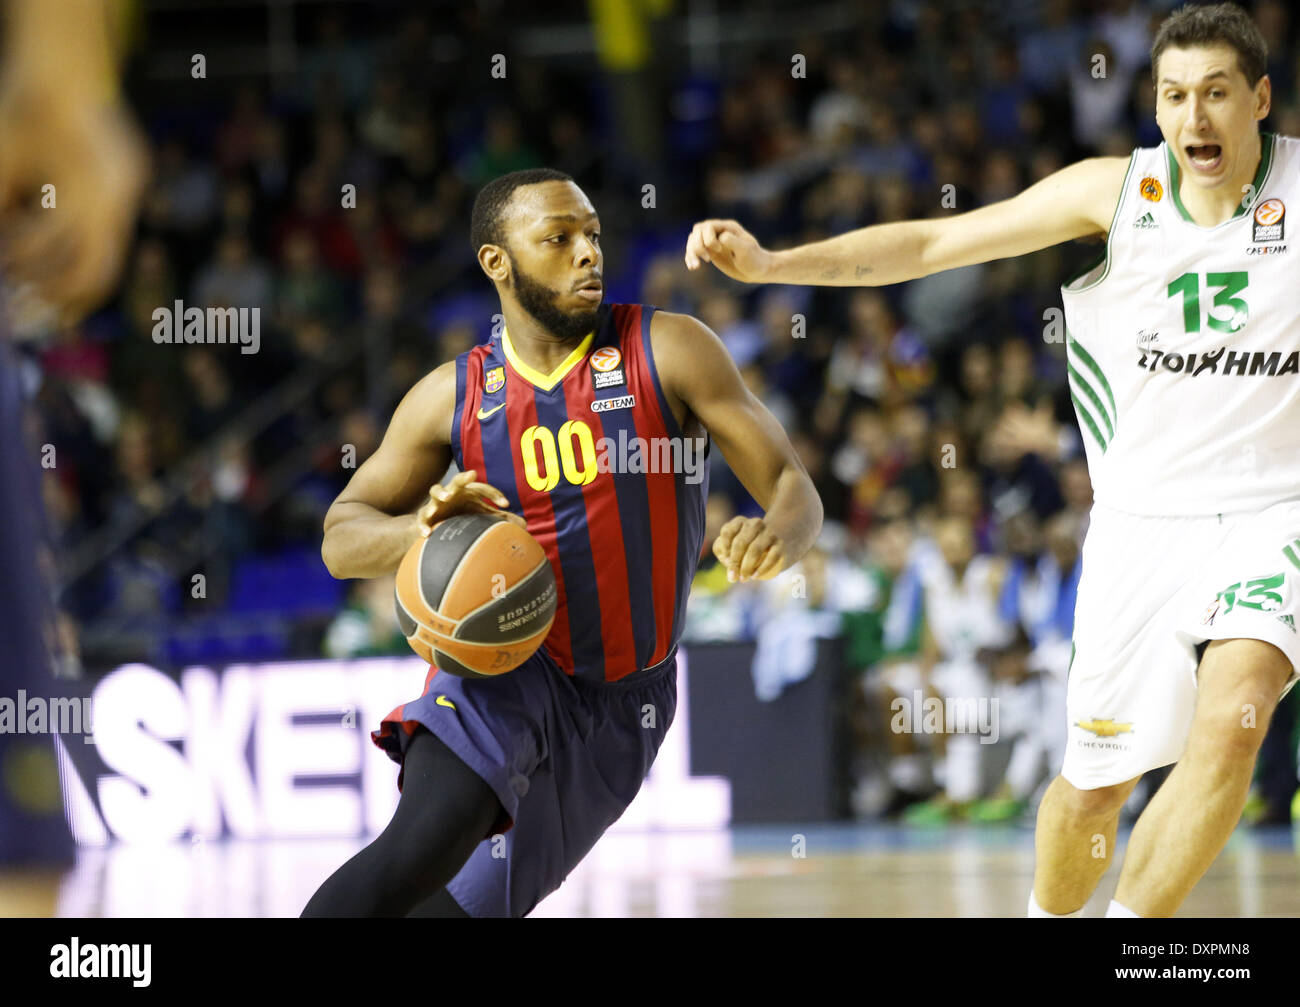 Barcelona, Spain. 28th Mar, 2014. Jacop Pullen and Dimitris Diamantidis in the match of the Top 16 Euroleague basketball between FC Barcelona and Panathinaikos, played at the Palau Blaugrana, the March 28, 2014. Photo Joan Valls/Urbanandsport/Nurphoto. Credit:  Joan Valls/NurPhoto/ZUMAPRESS.com/Alamy Live News - Stock Image